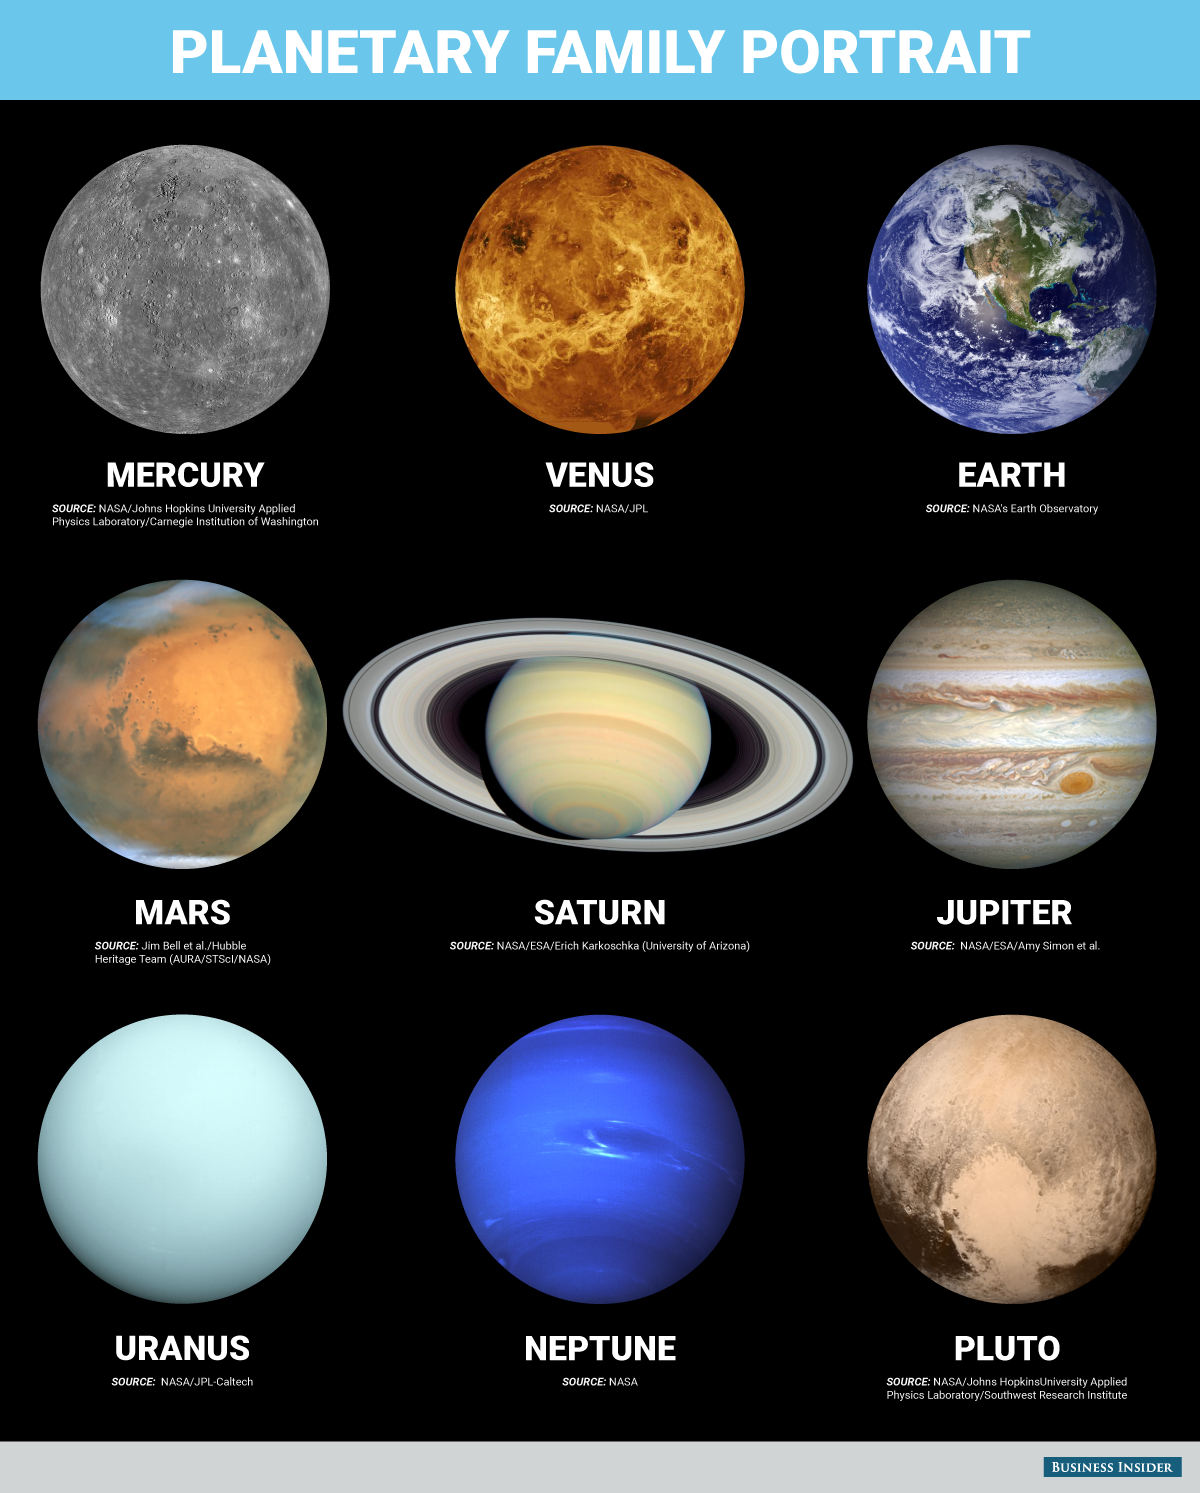 Bi Graphics Planets 1 Png 1200 1493 Space And Astronomy Solar System Planets Solar System Projects